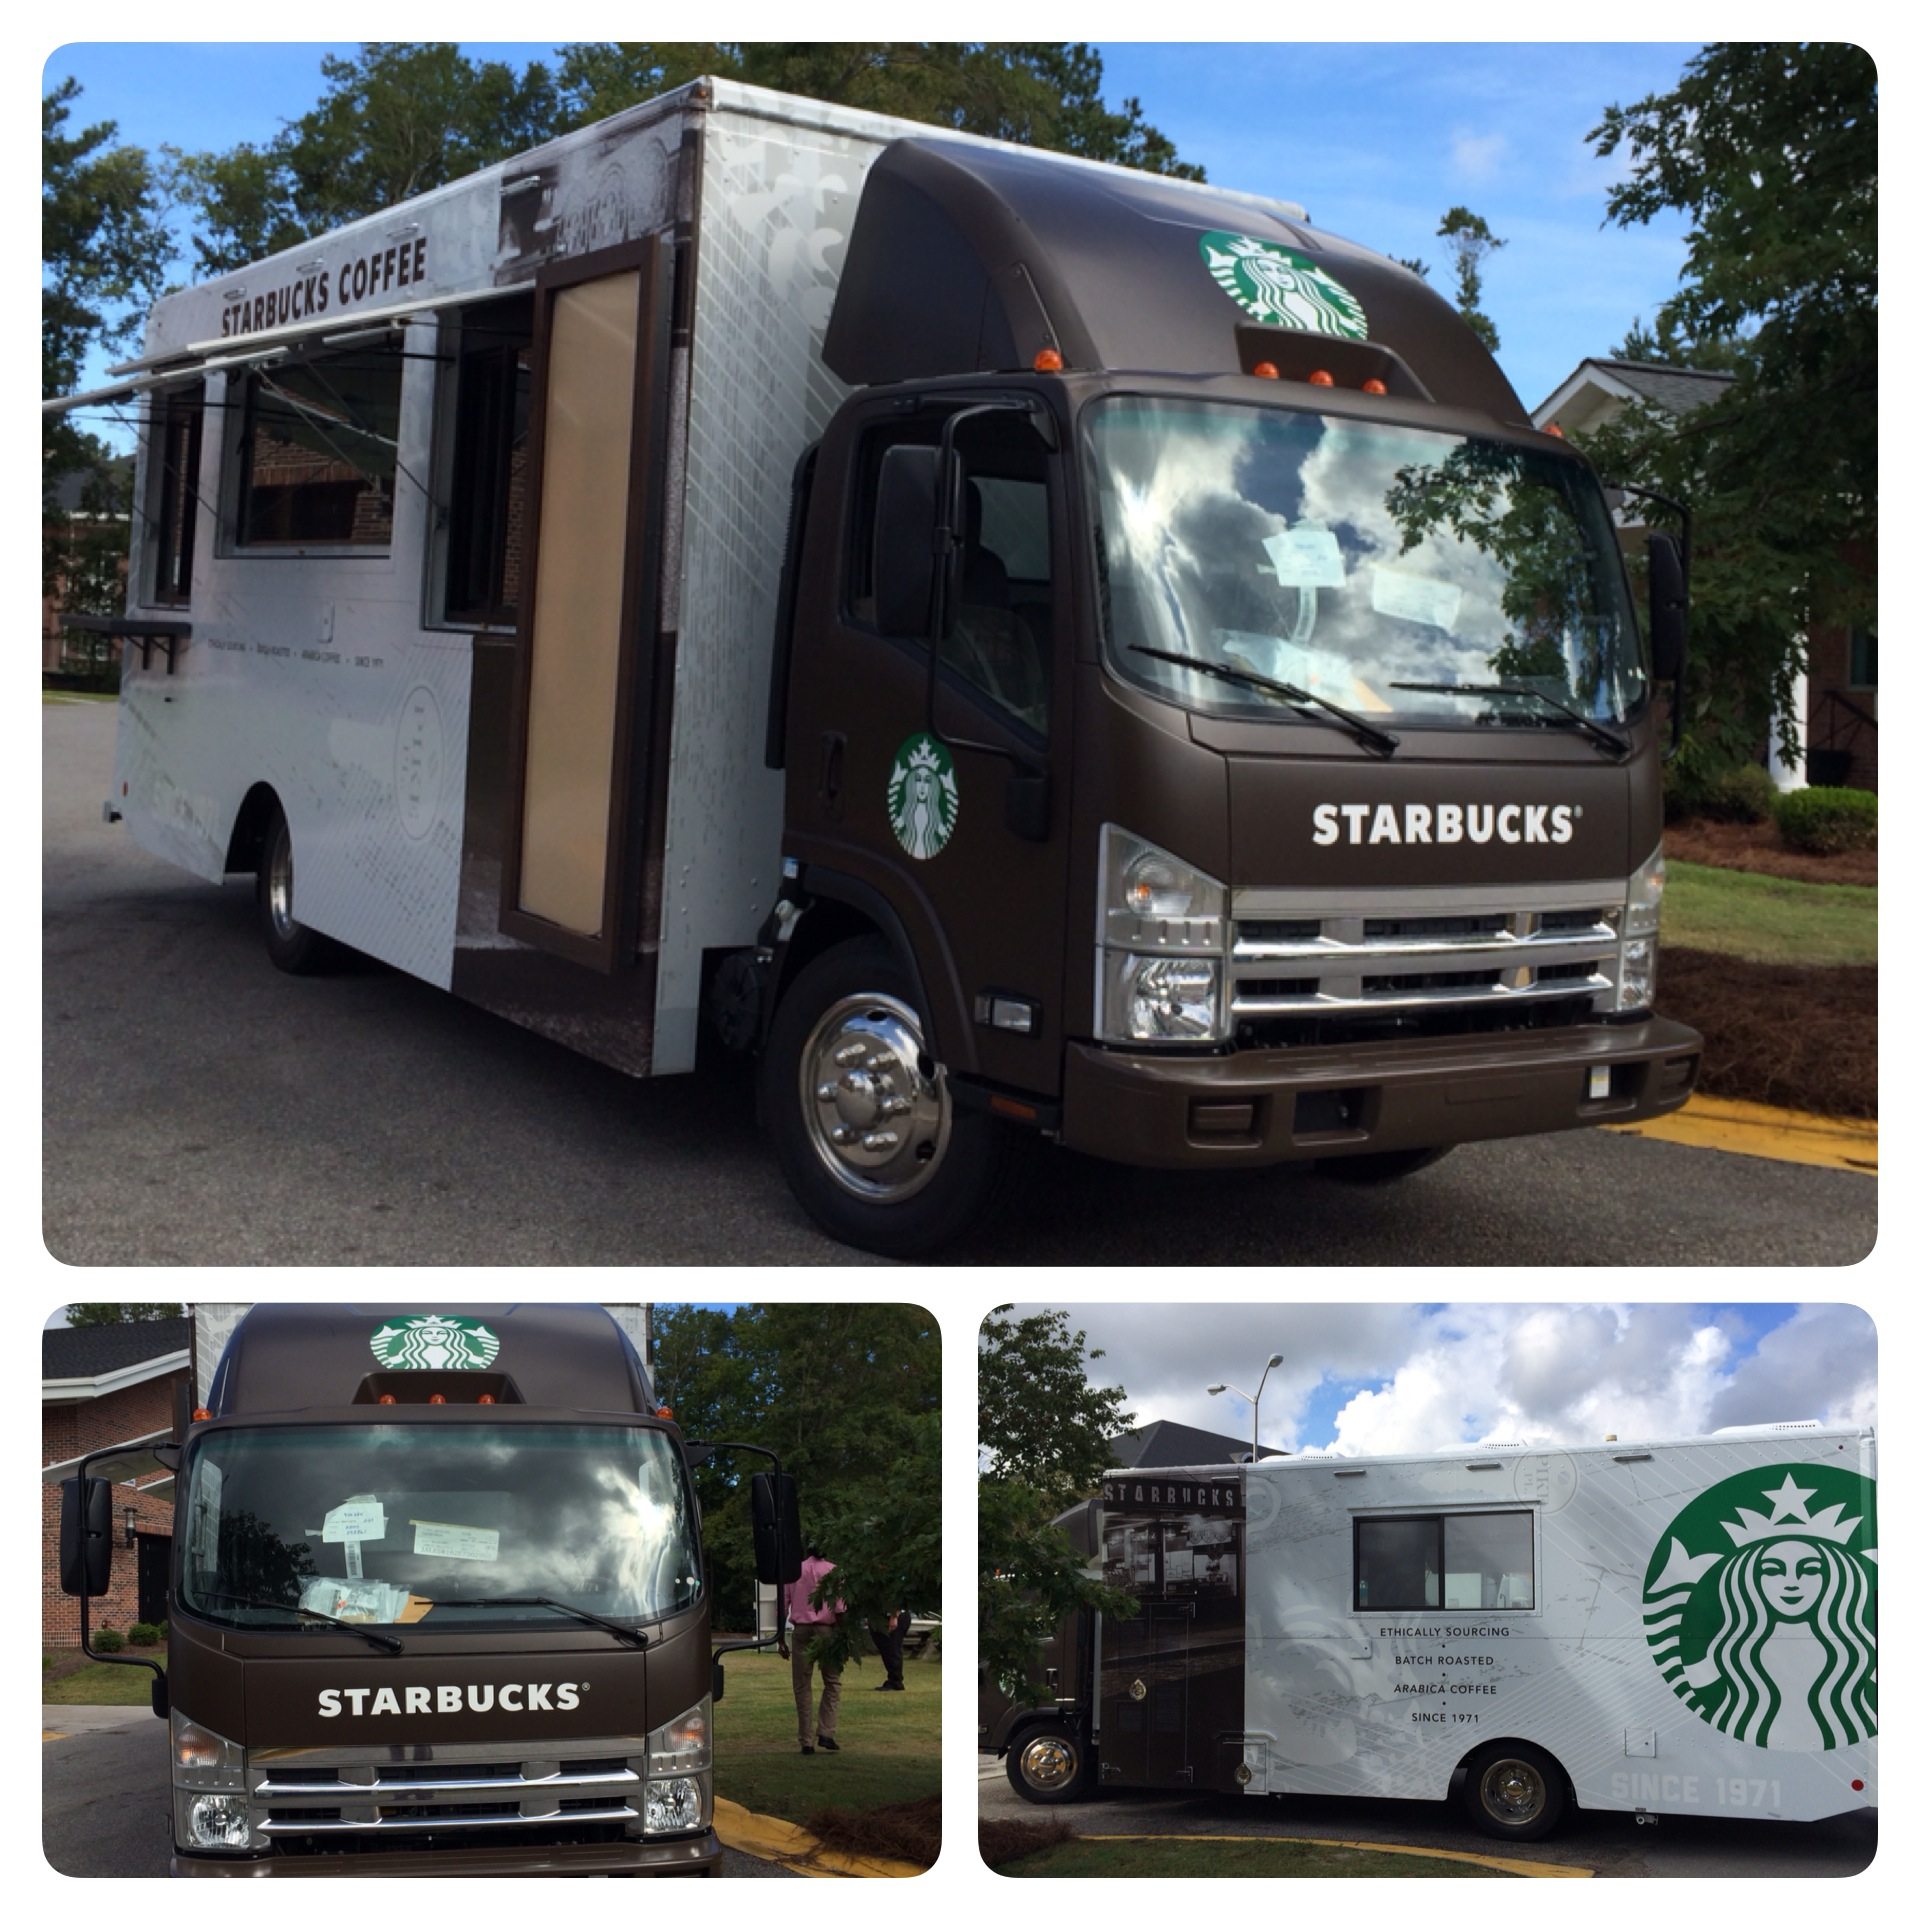 Here are some of the photos I snapped today of the new Mobile Starbucks Truck.